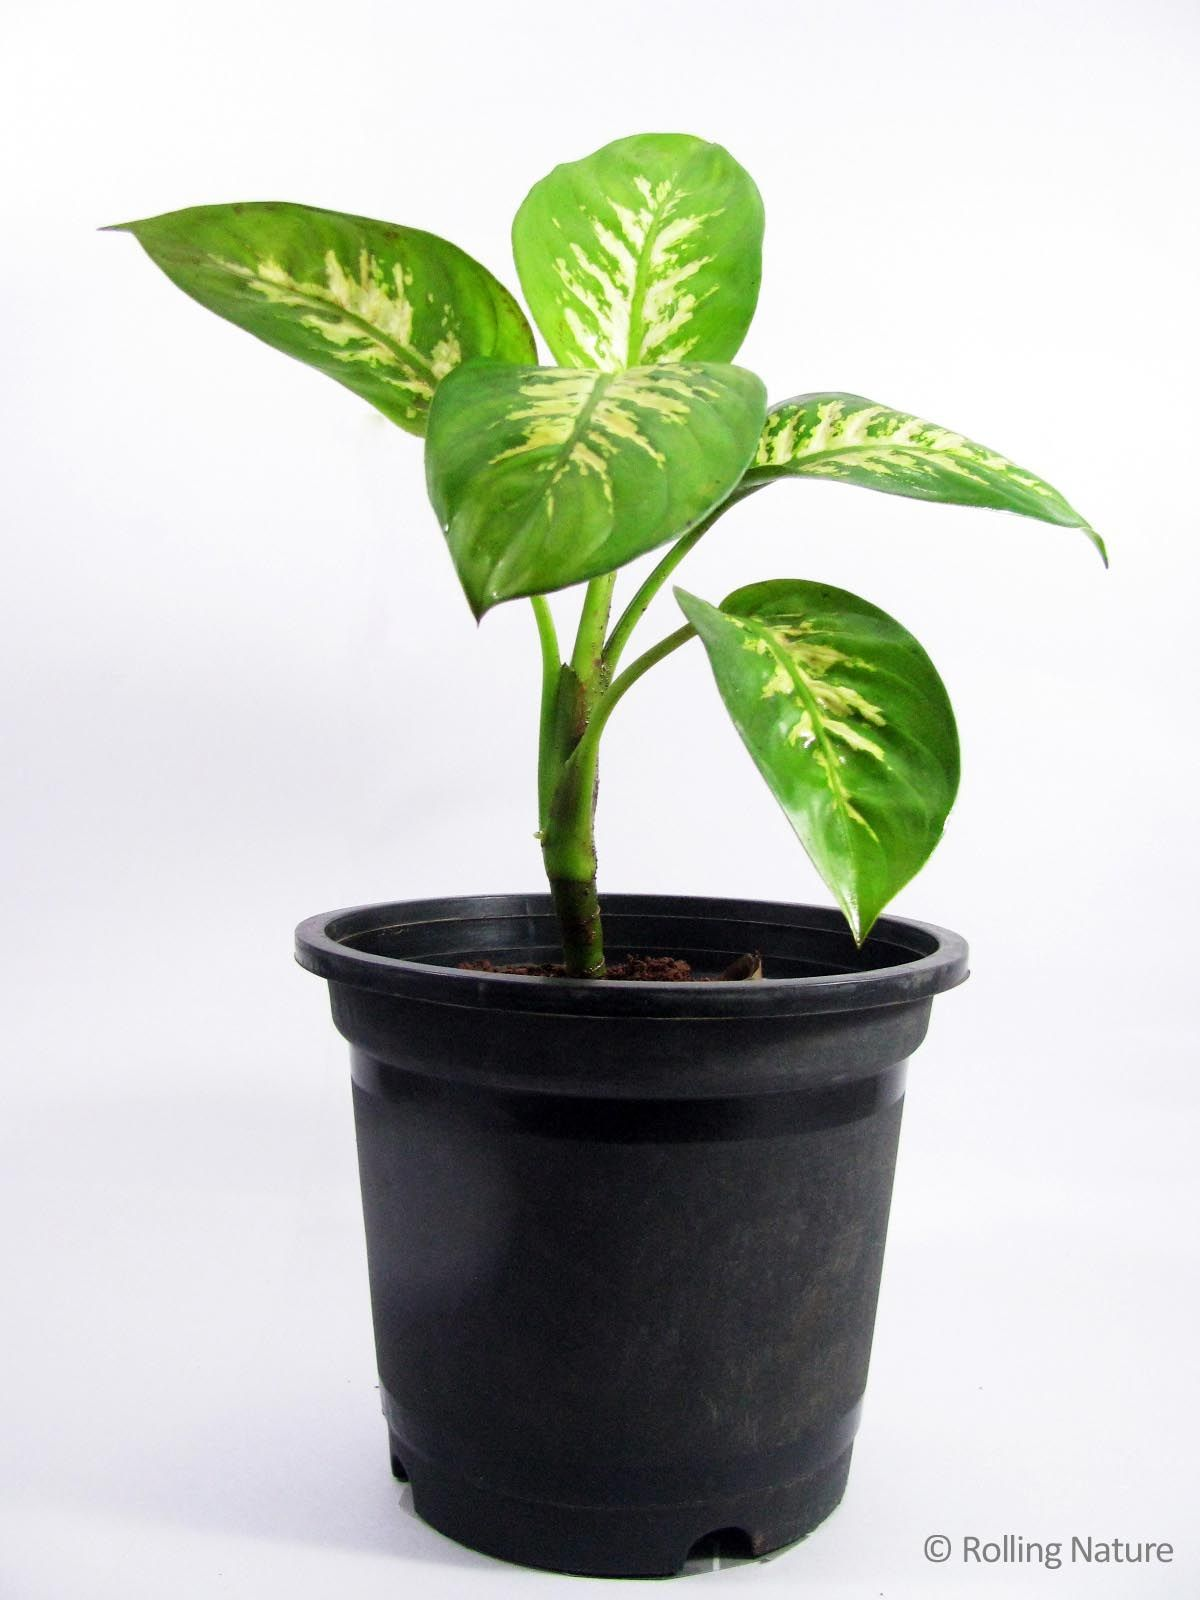 Beauty without any problems - growing dieffenbachia in your home